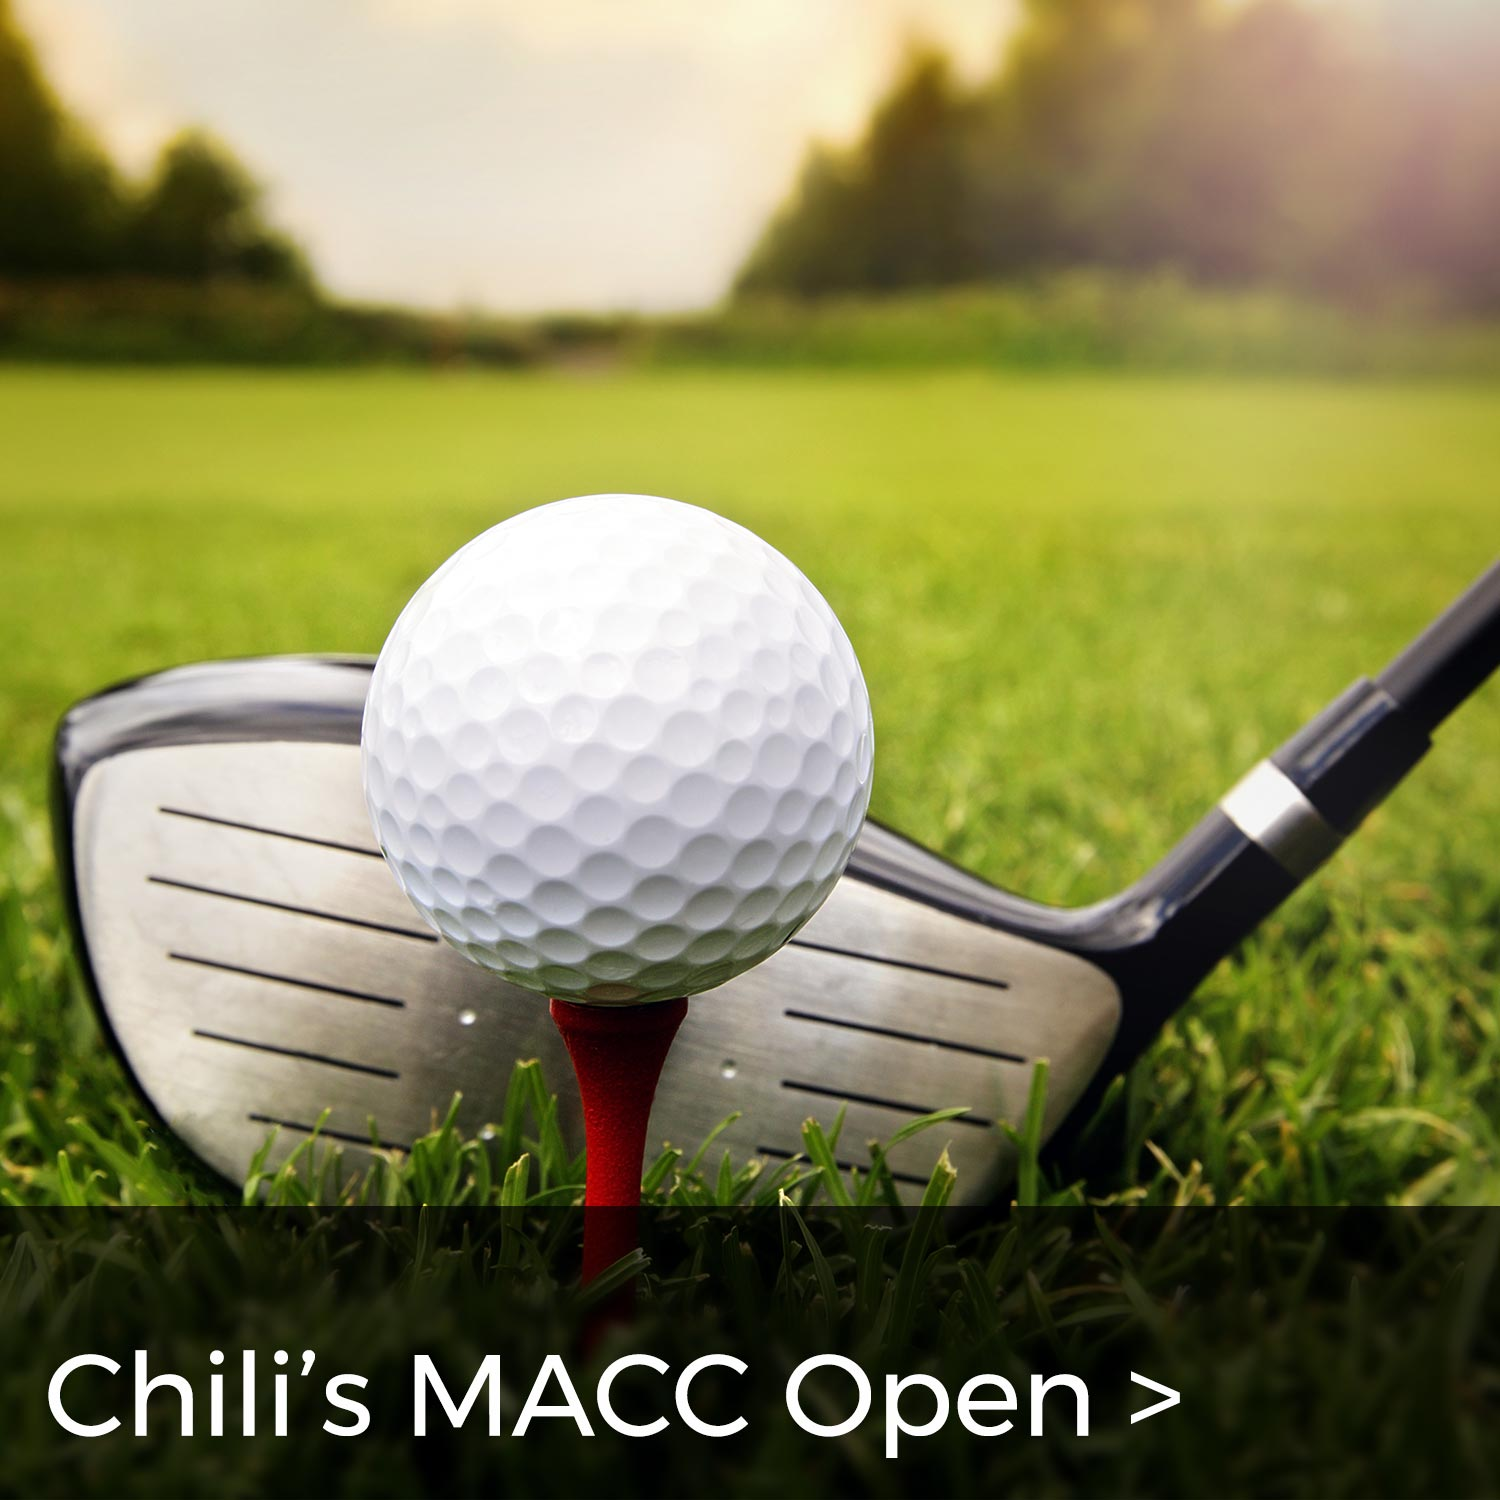 Chili's MACC Open